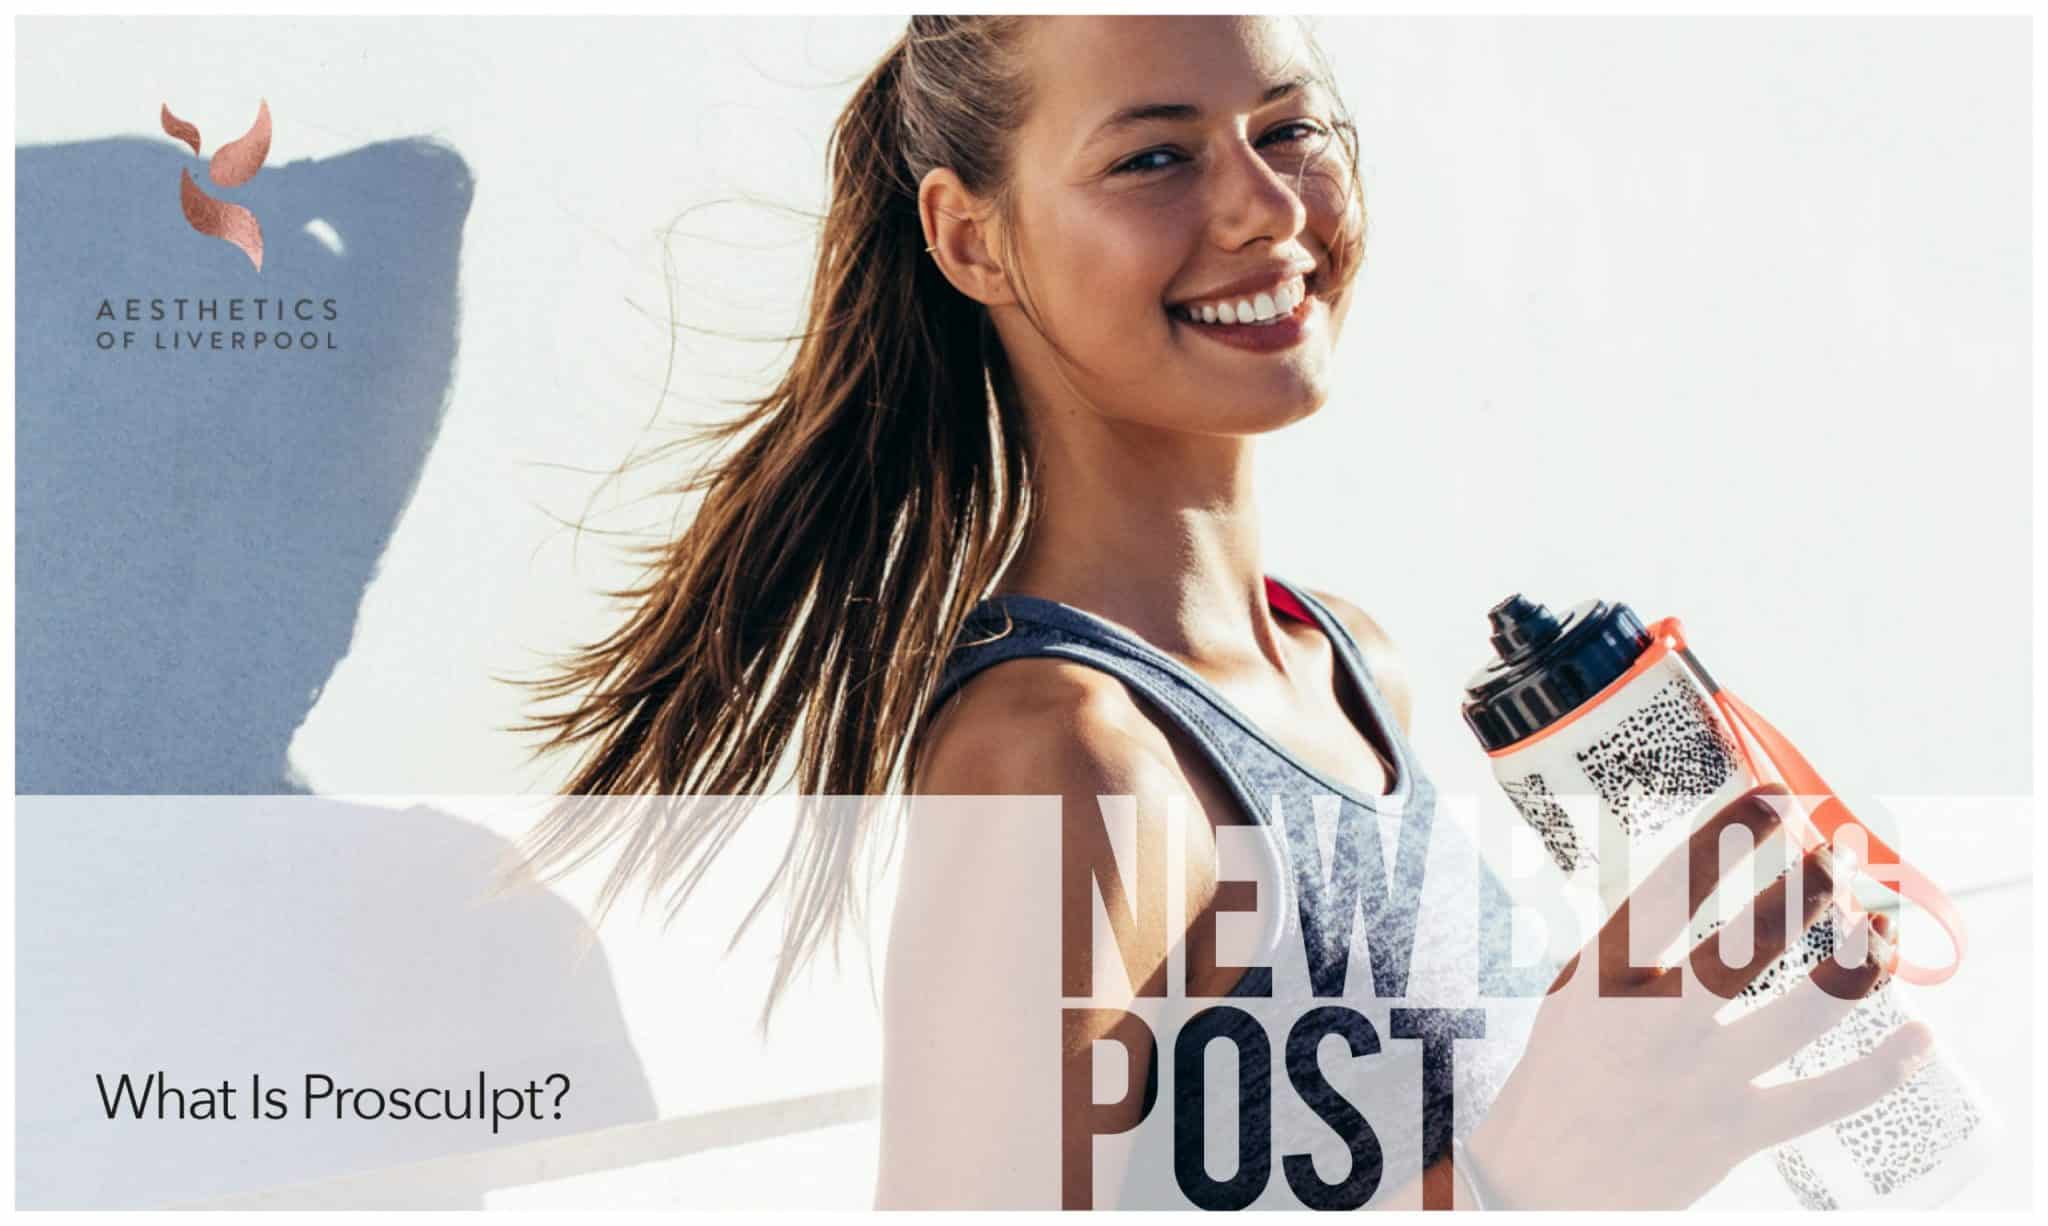 What is Prosculpt?